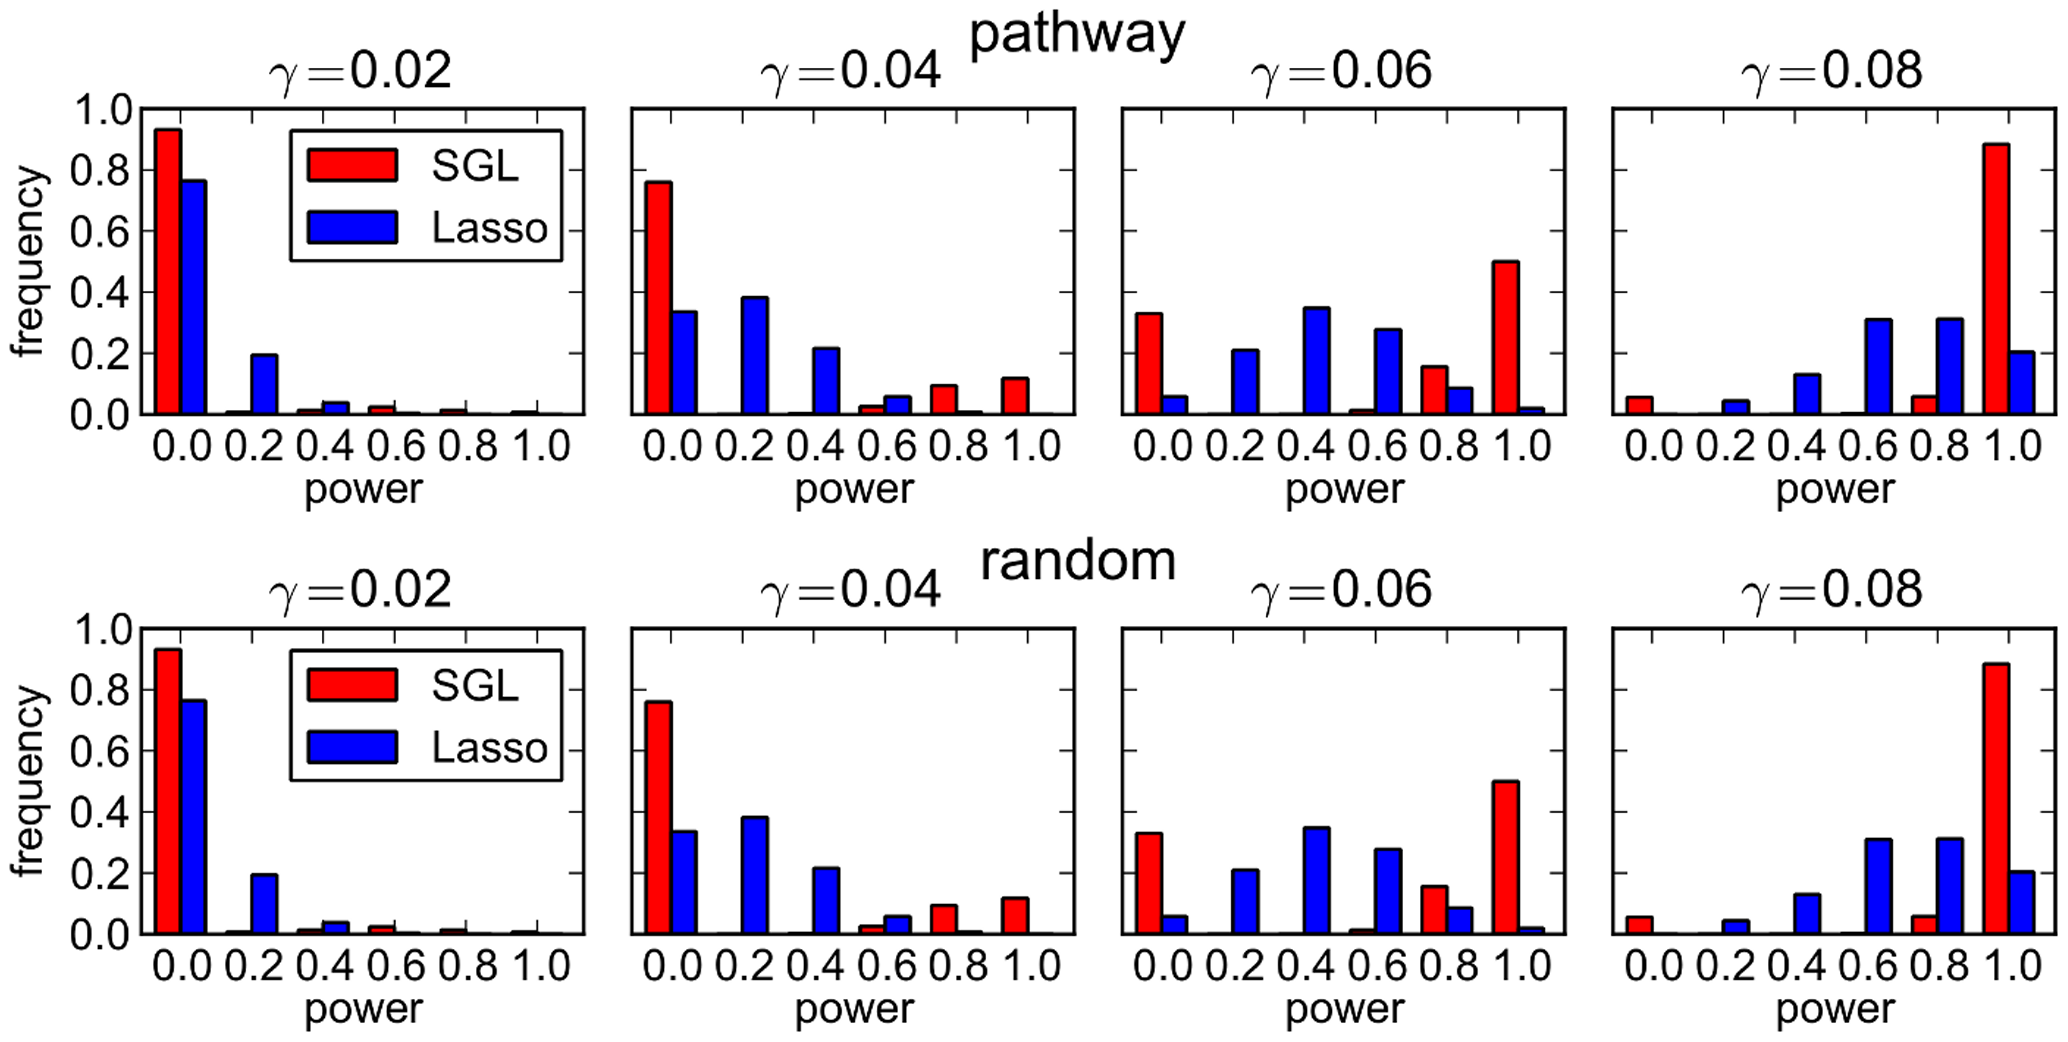 SGL vs Lasso: distribution over 500 MC simulations of power to detect 5 causal SNPs.